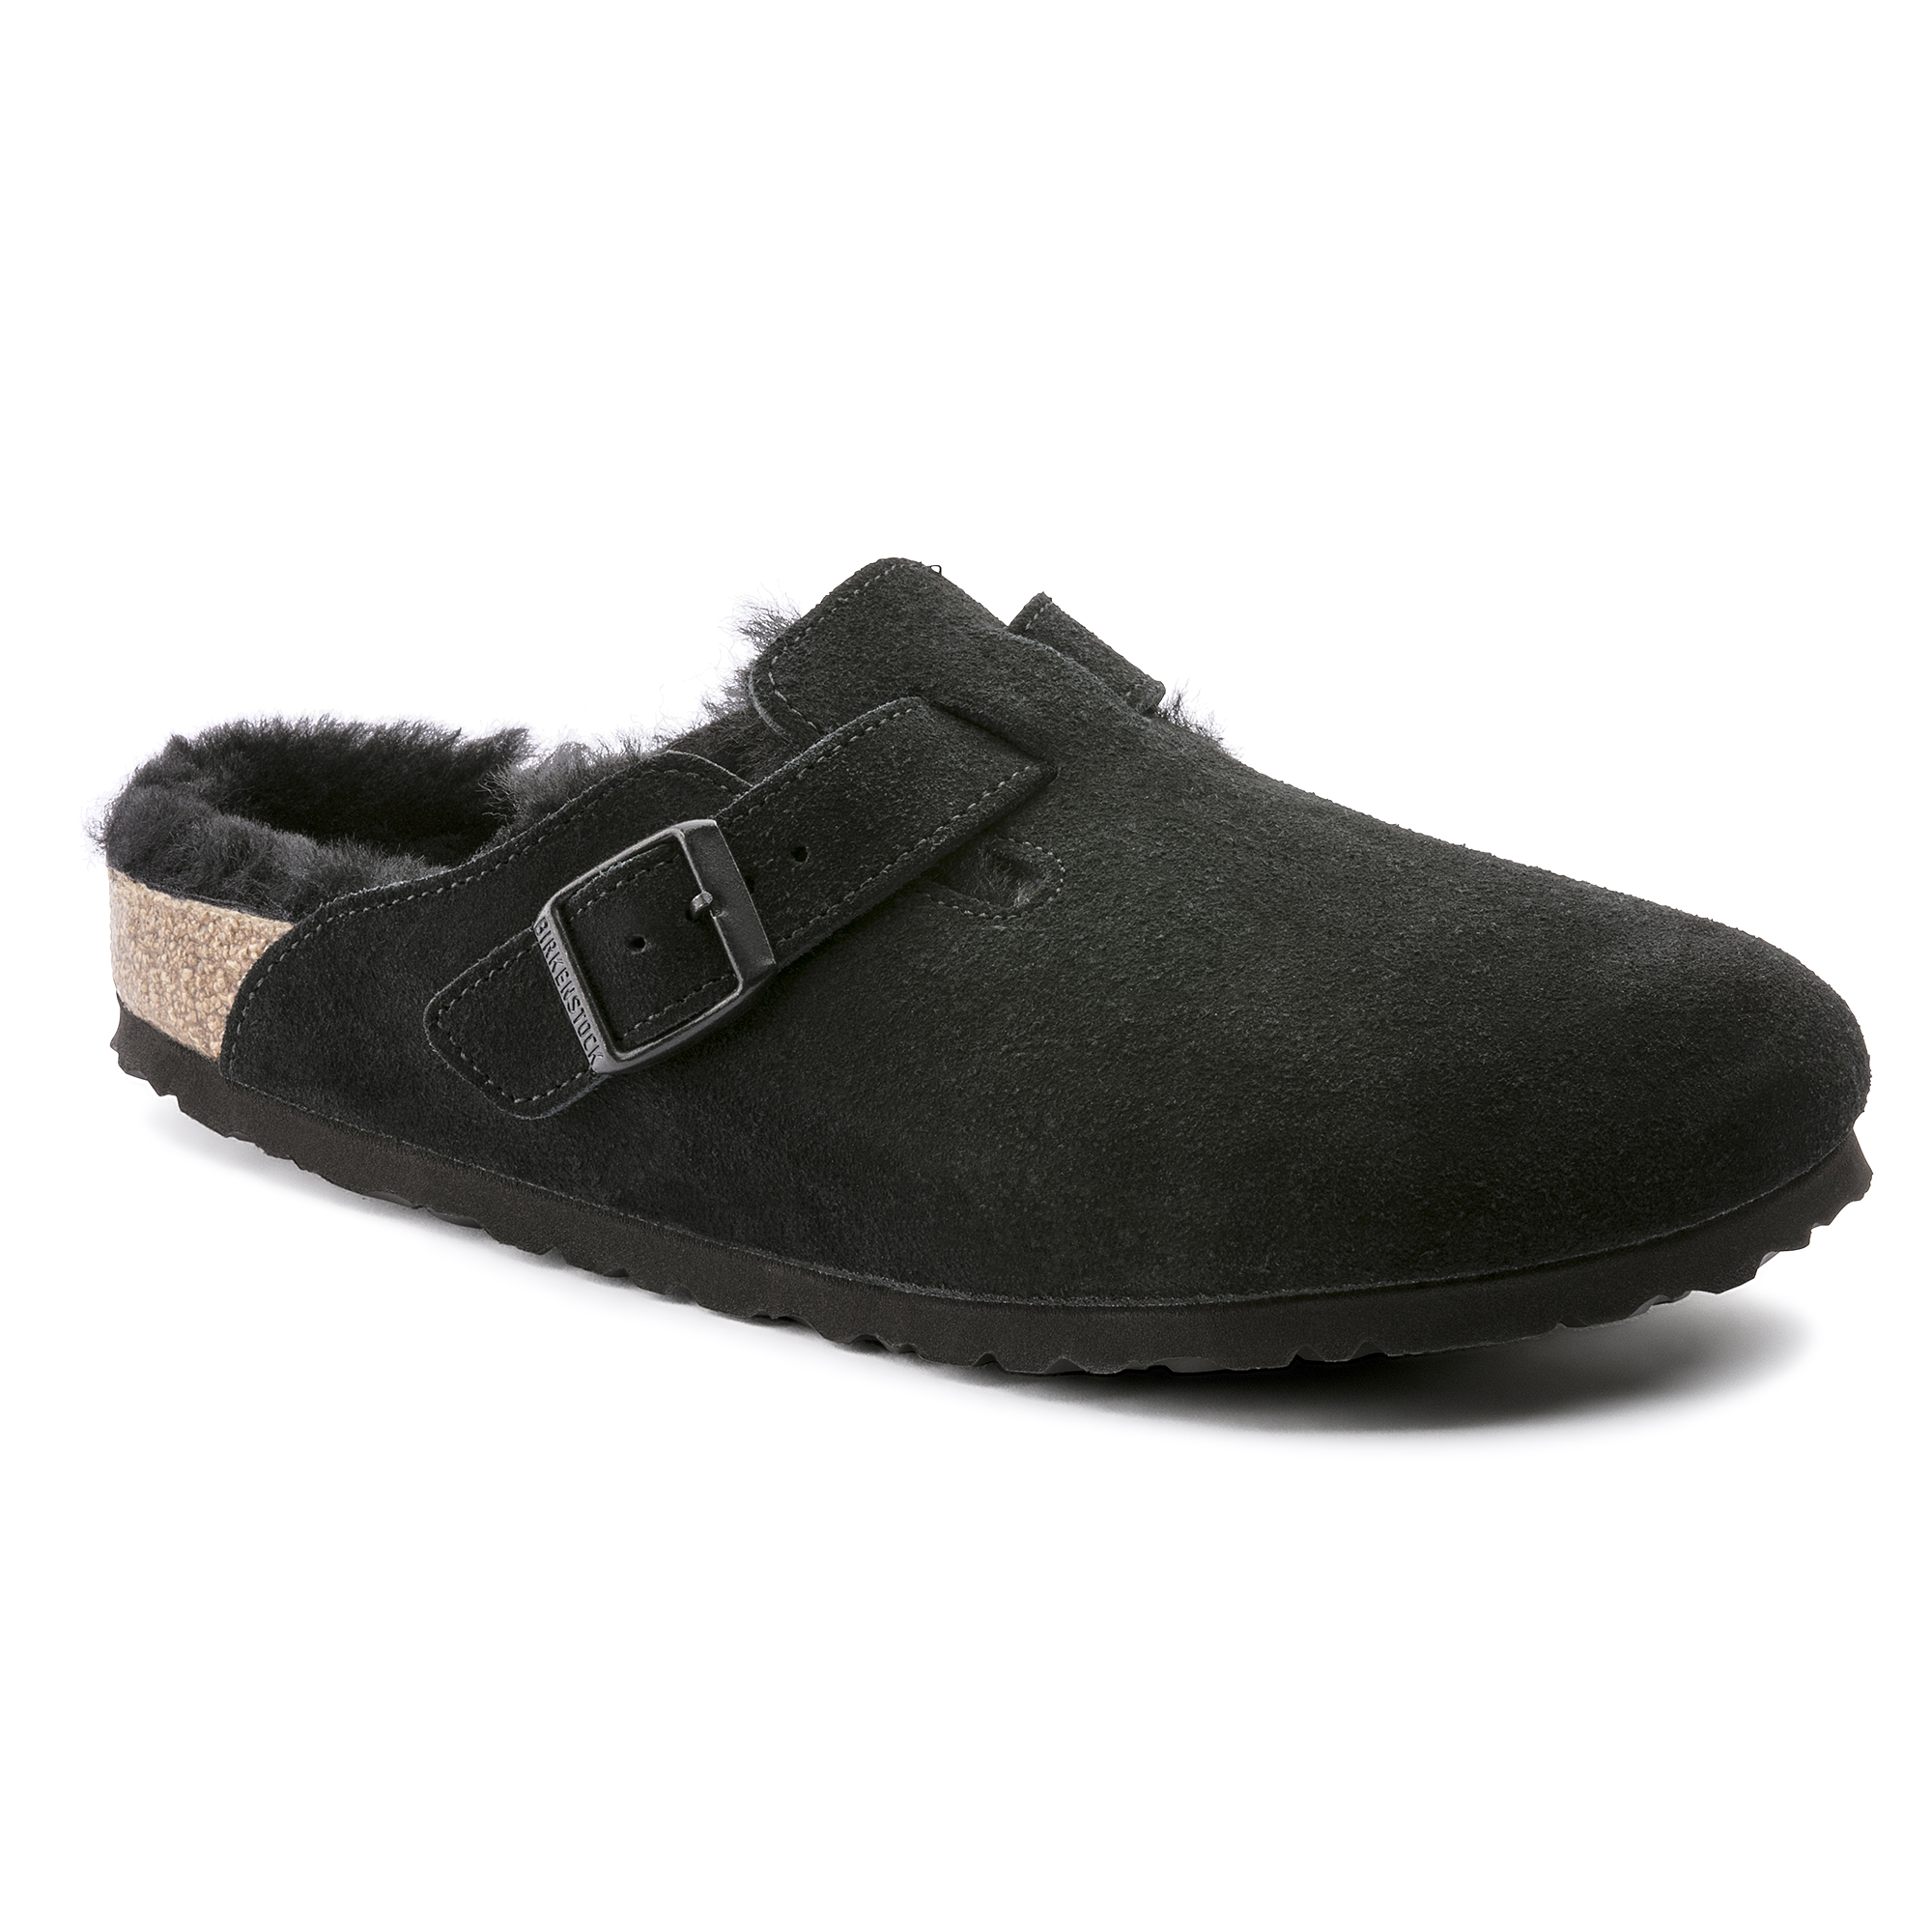 ffdd15ac25c5 Boston Suede Leather Black